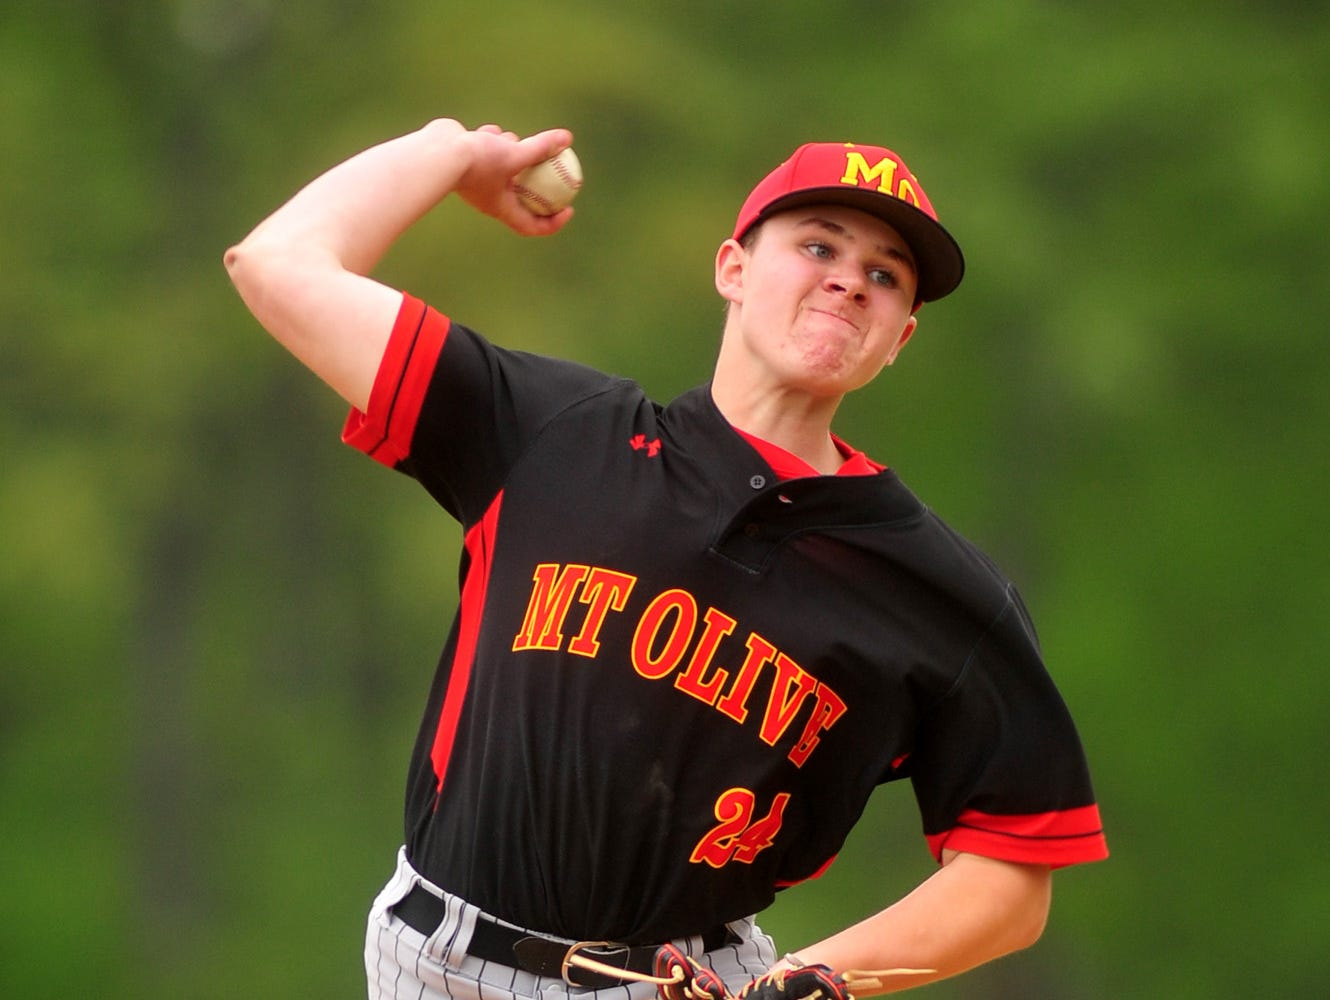 Pitcher Greg Helmlinger allowed three runs, walked one and struck out eight as No. 14 Mount Olive upset No. 3 Montville in the Morris County Tournament on Saturday.